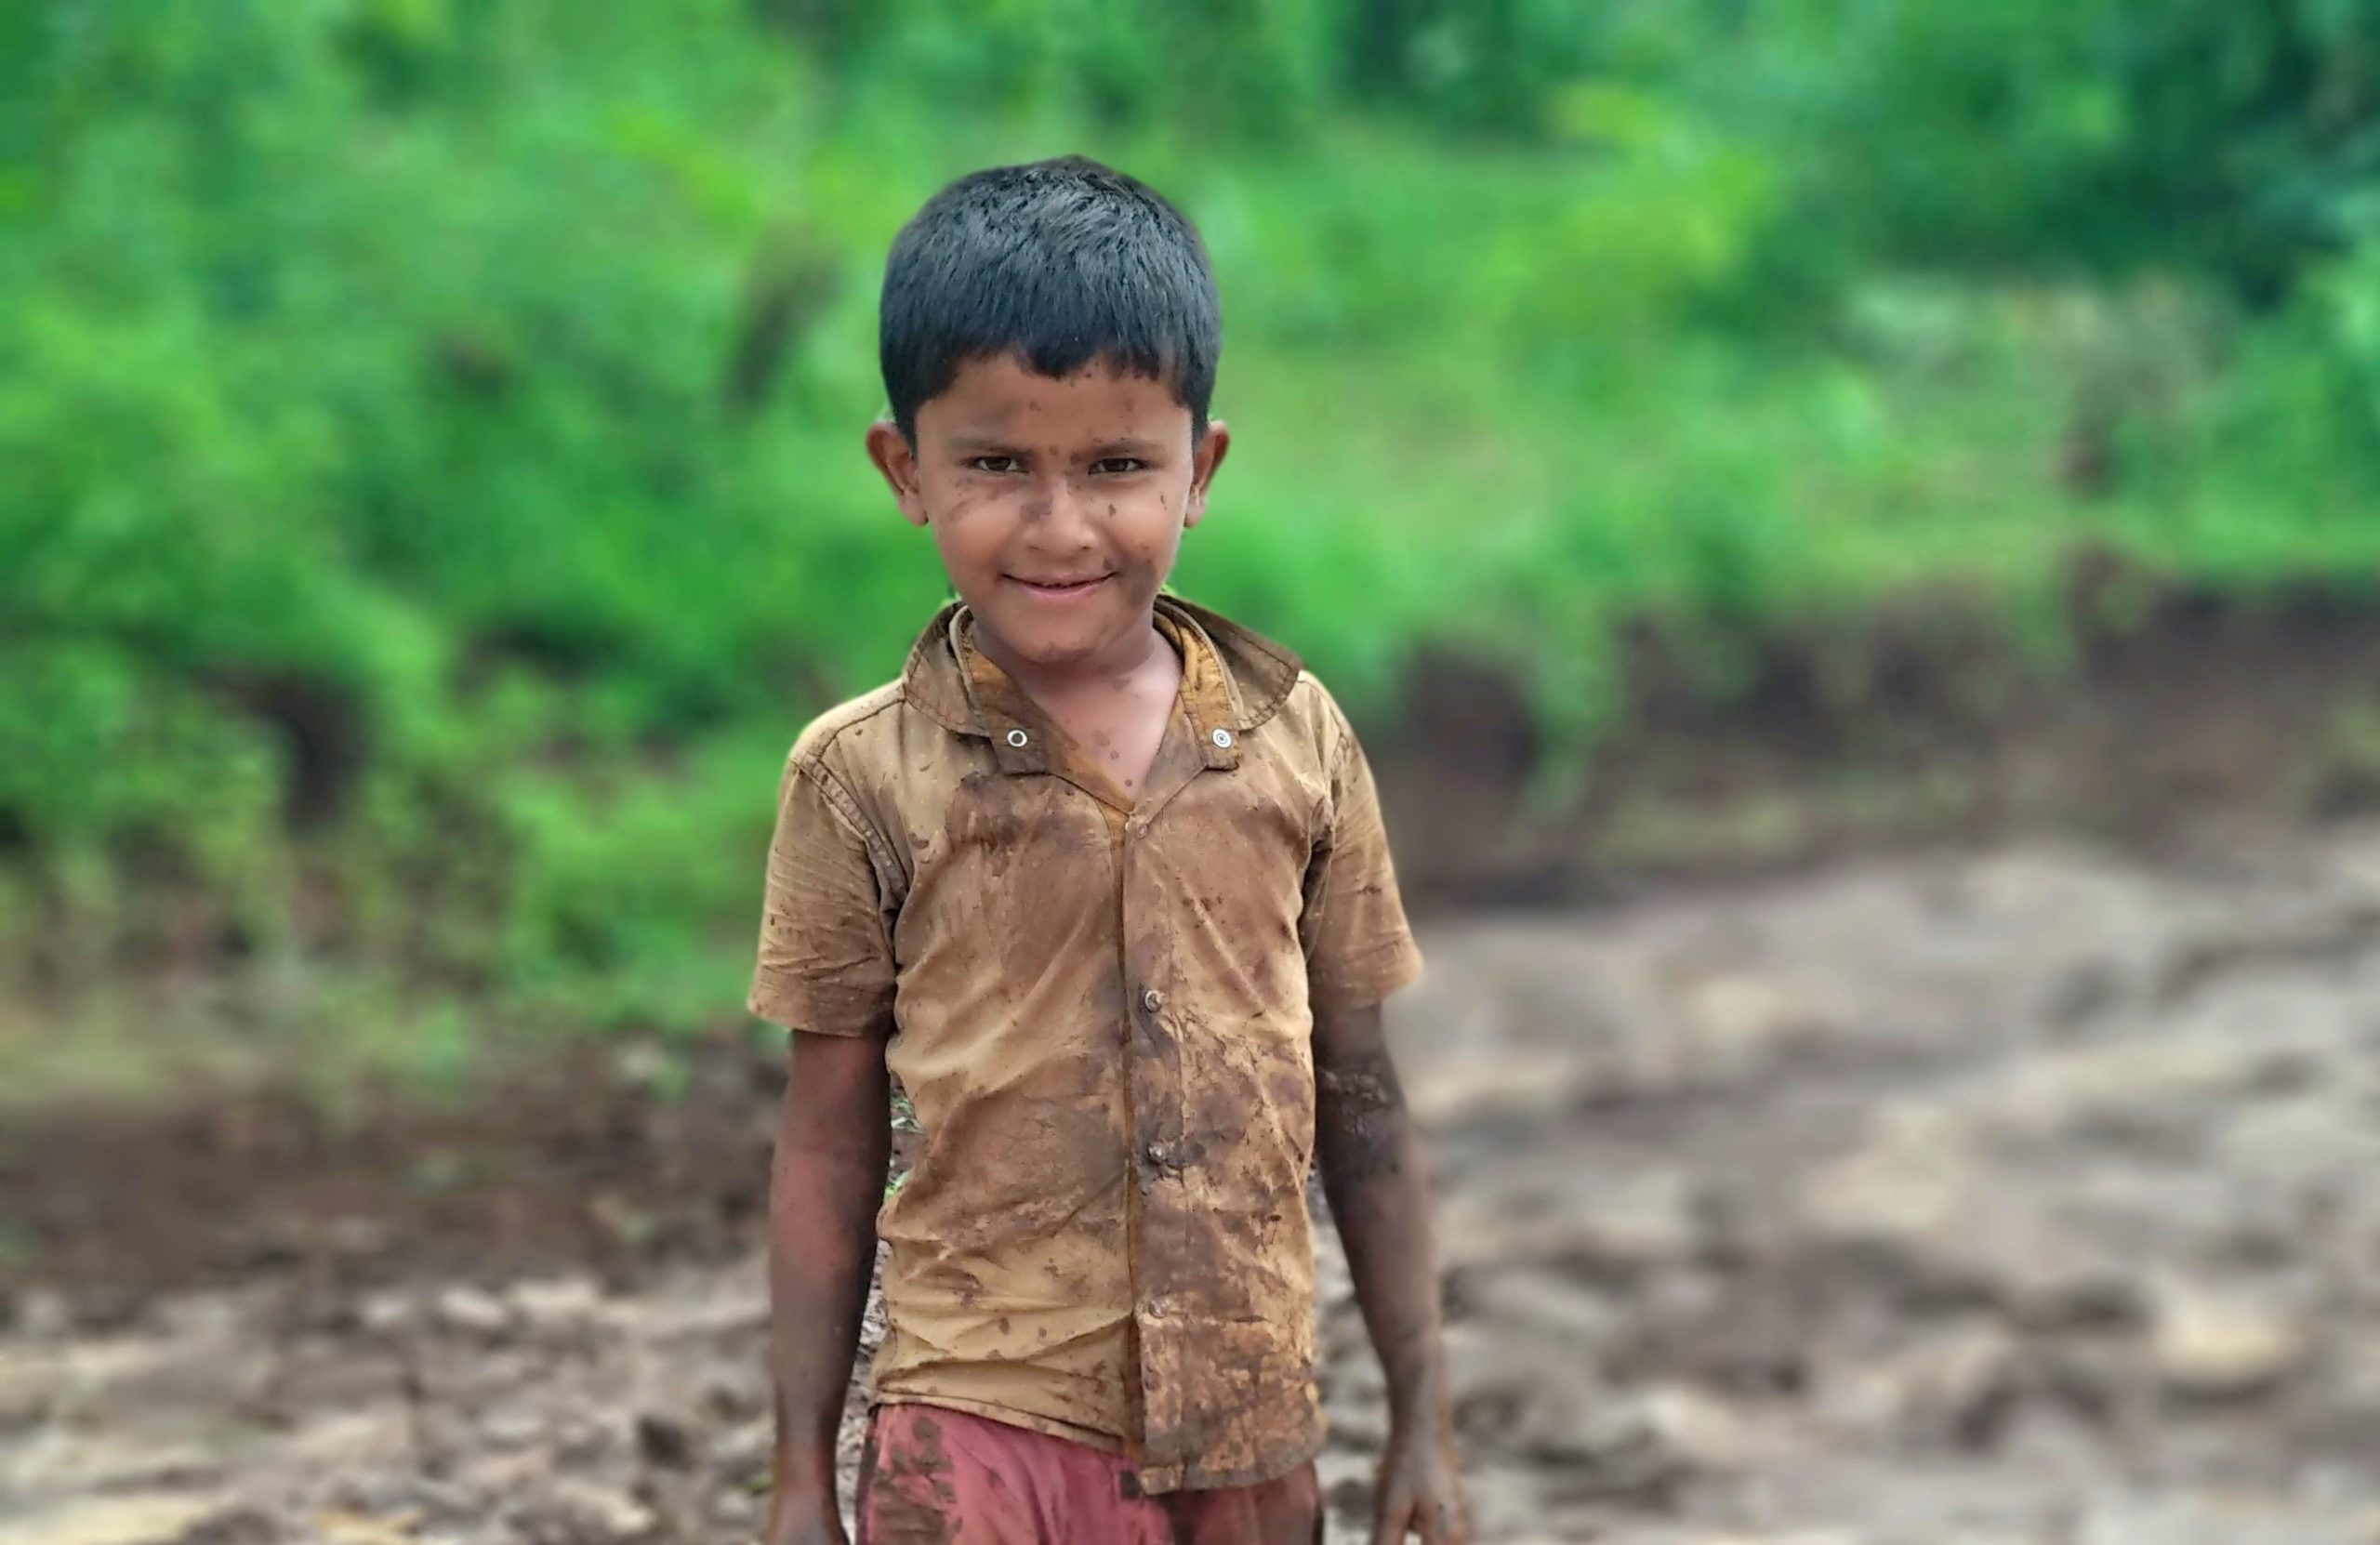 Kid playing in a mud